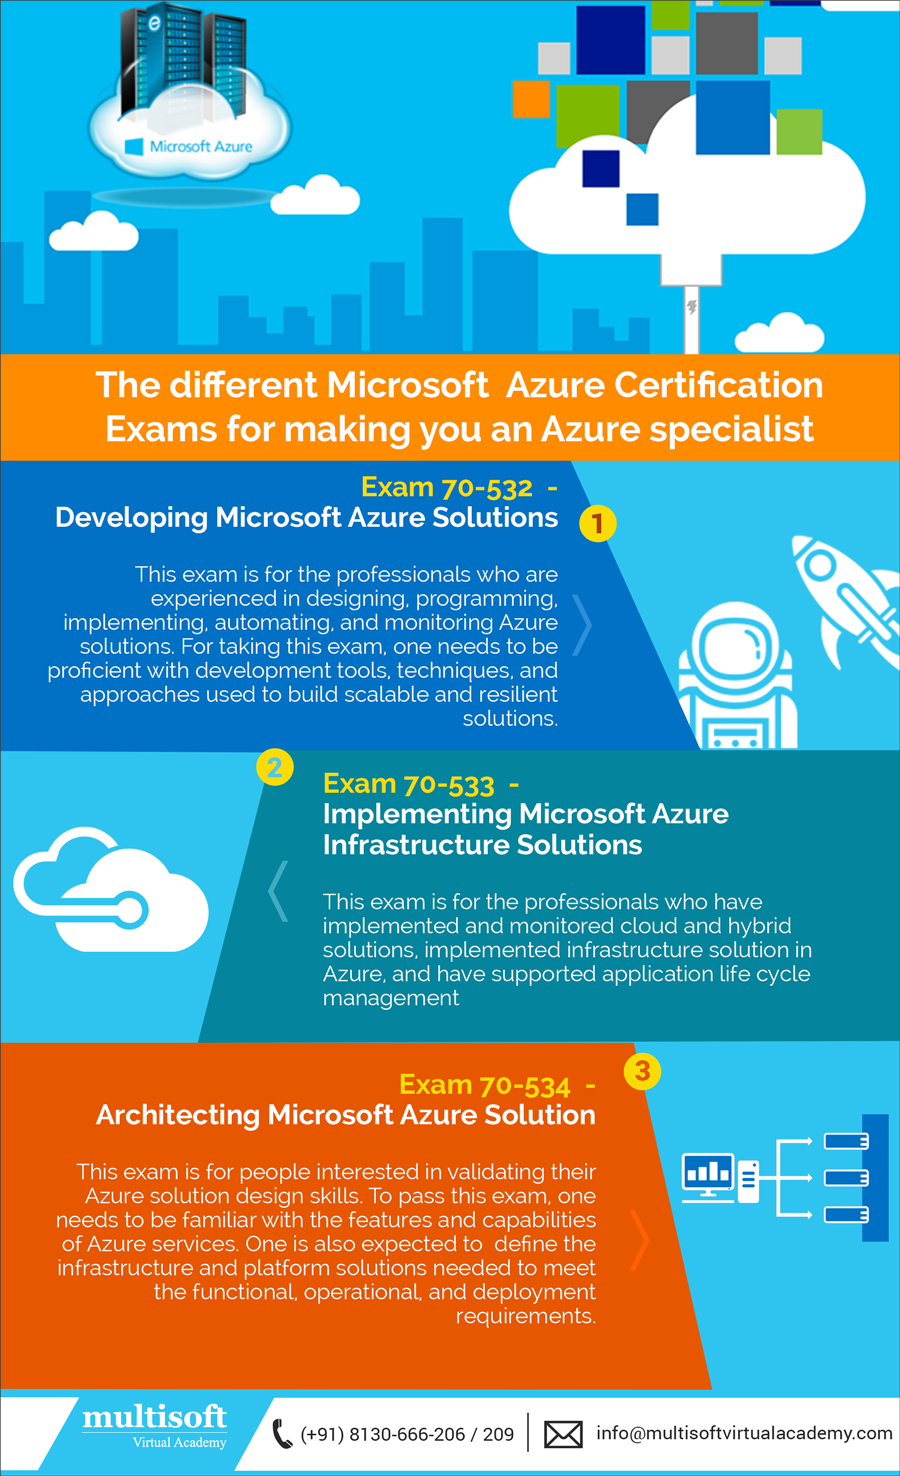 The Different Microsoft Azure Certification Exams For Making You An